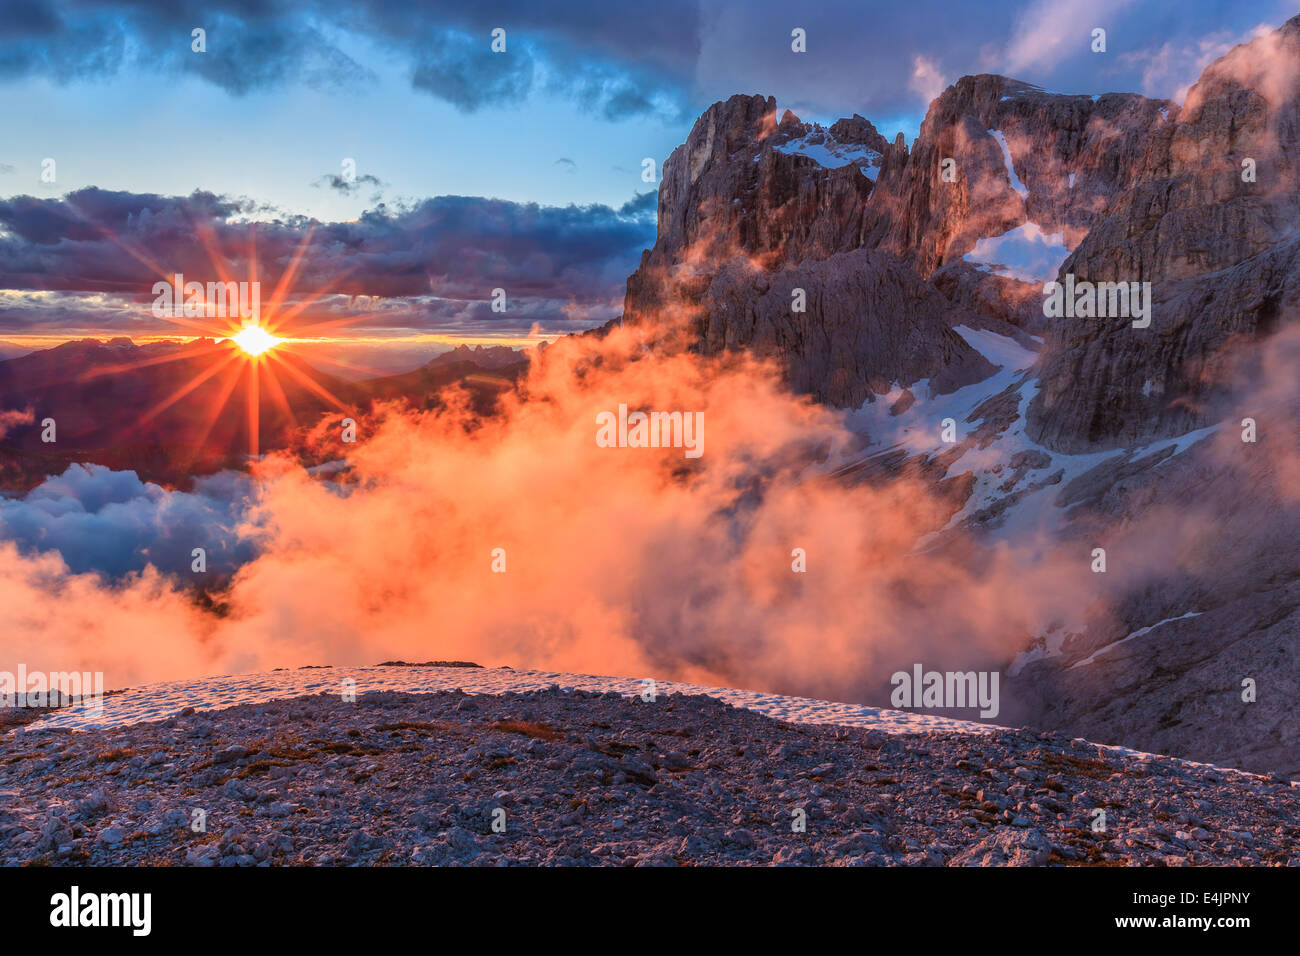 suset in Dolomite Alps, Italy - Stock Image